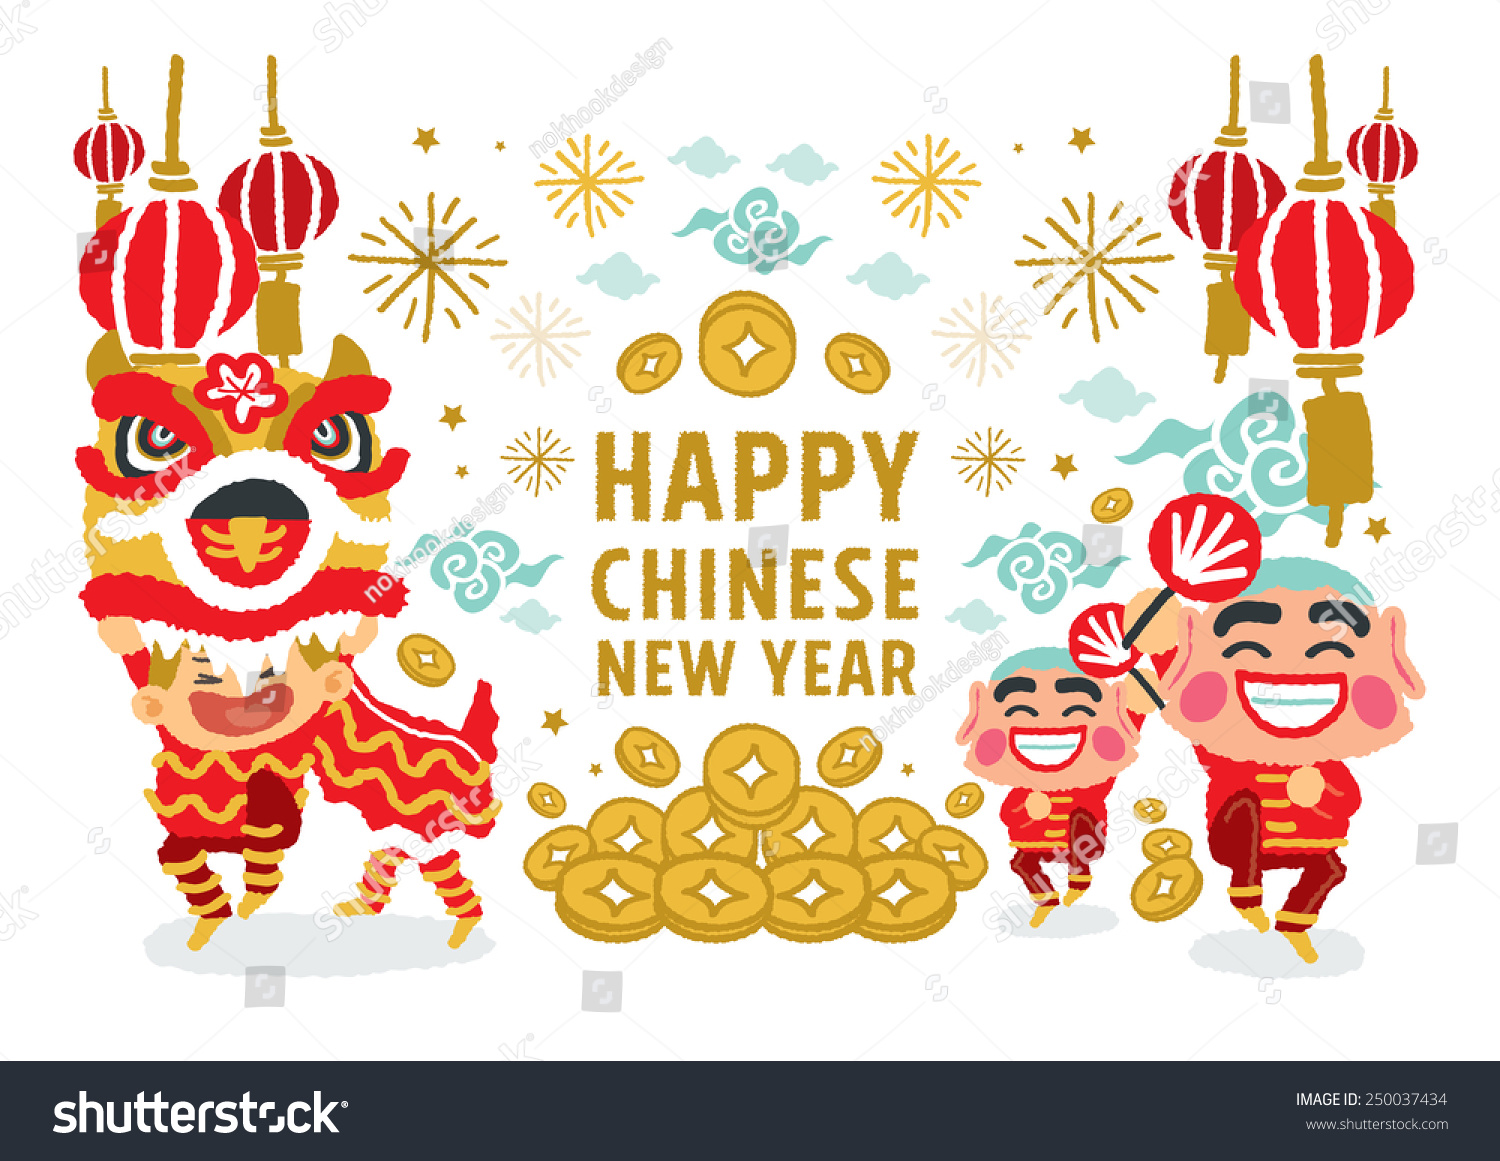 Chinese Calendar Illustration : Chinese new year lion dancing concepts stock vector